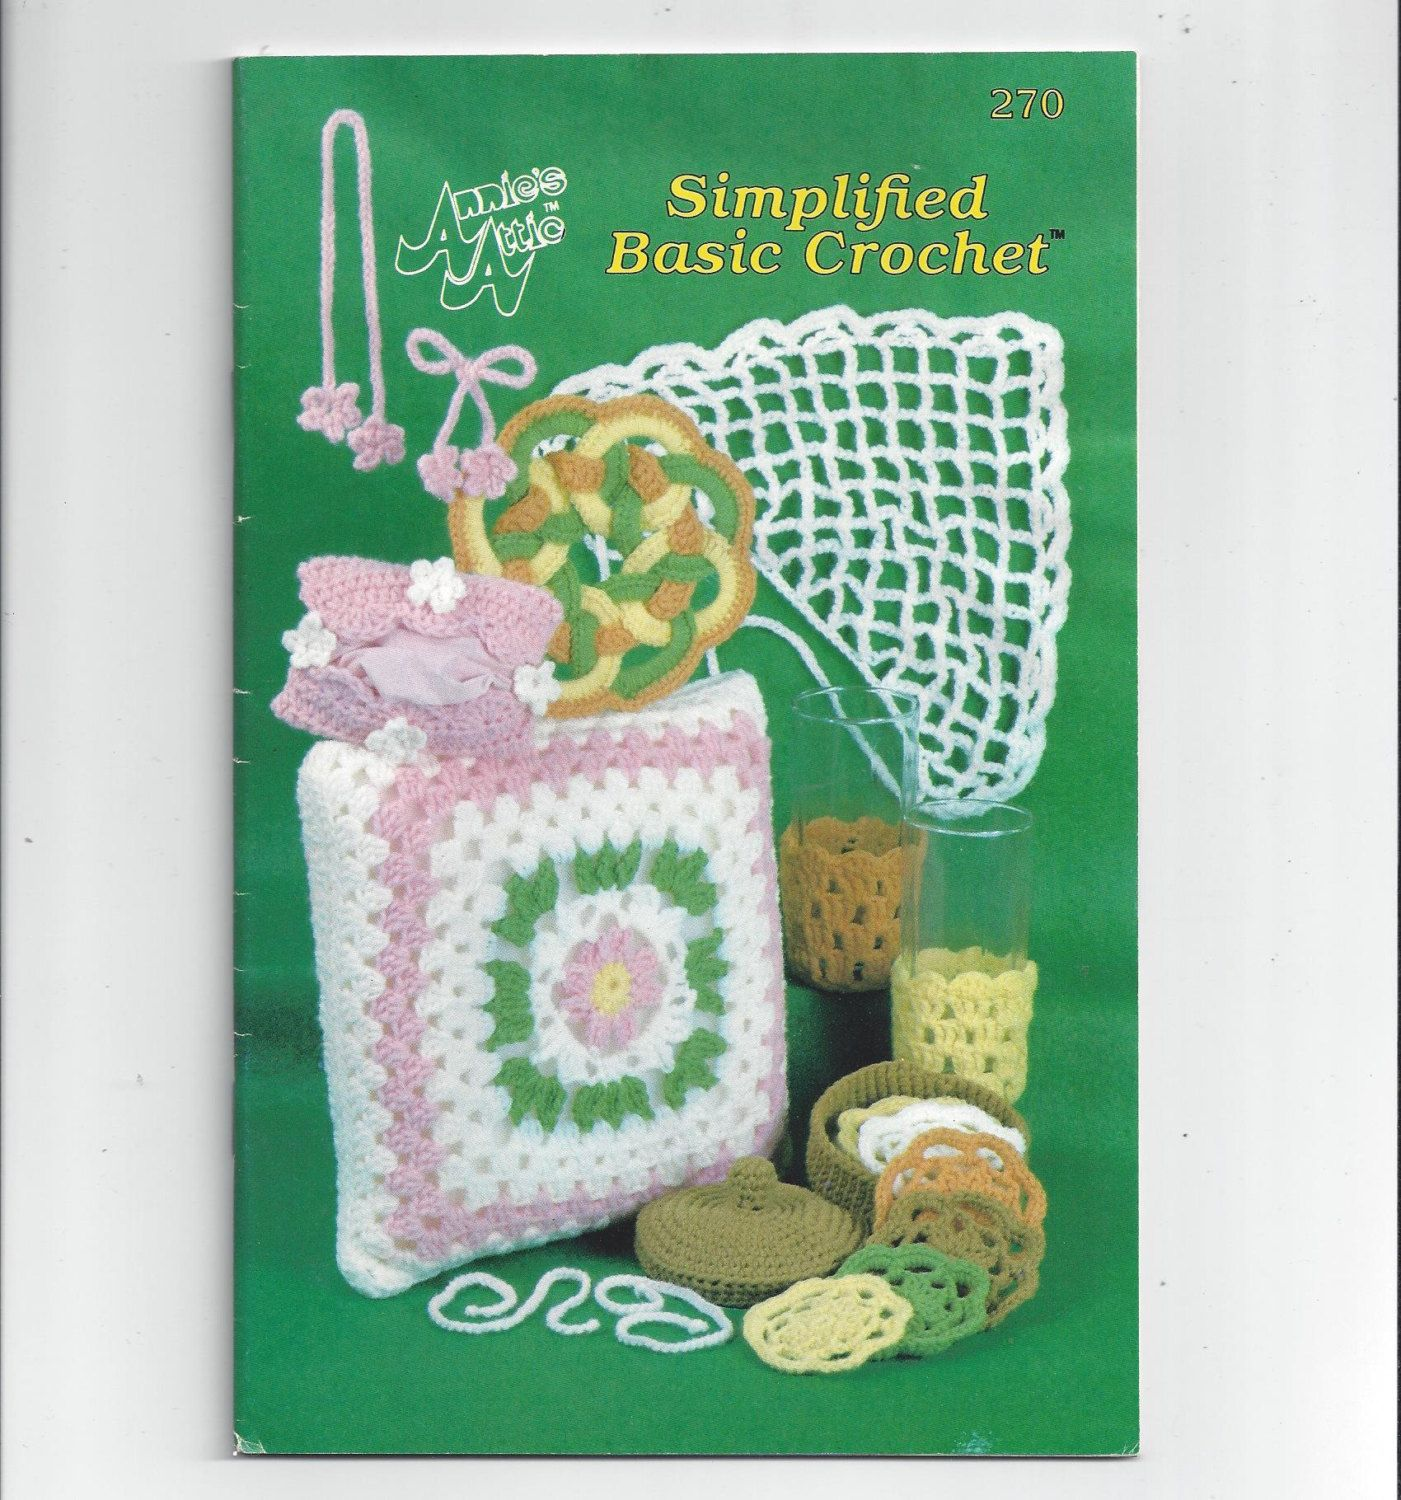 1990s Annie's Attic Simplified Basic Crochet Book 270, A Crochet Course, How to Hold Hook & Thread, Hair Bows, Peasant Scarf, Hot Pad, More by VictorianWardrobe on Etsy